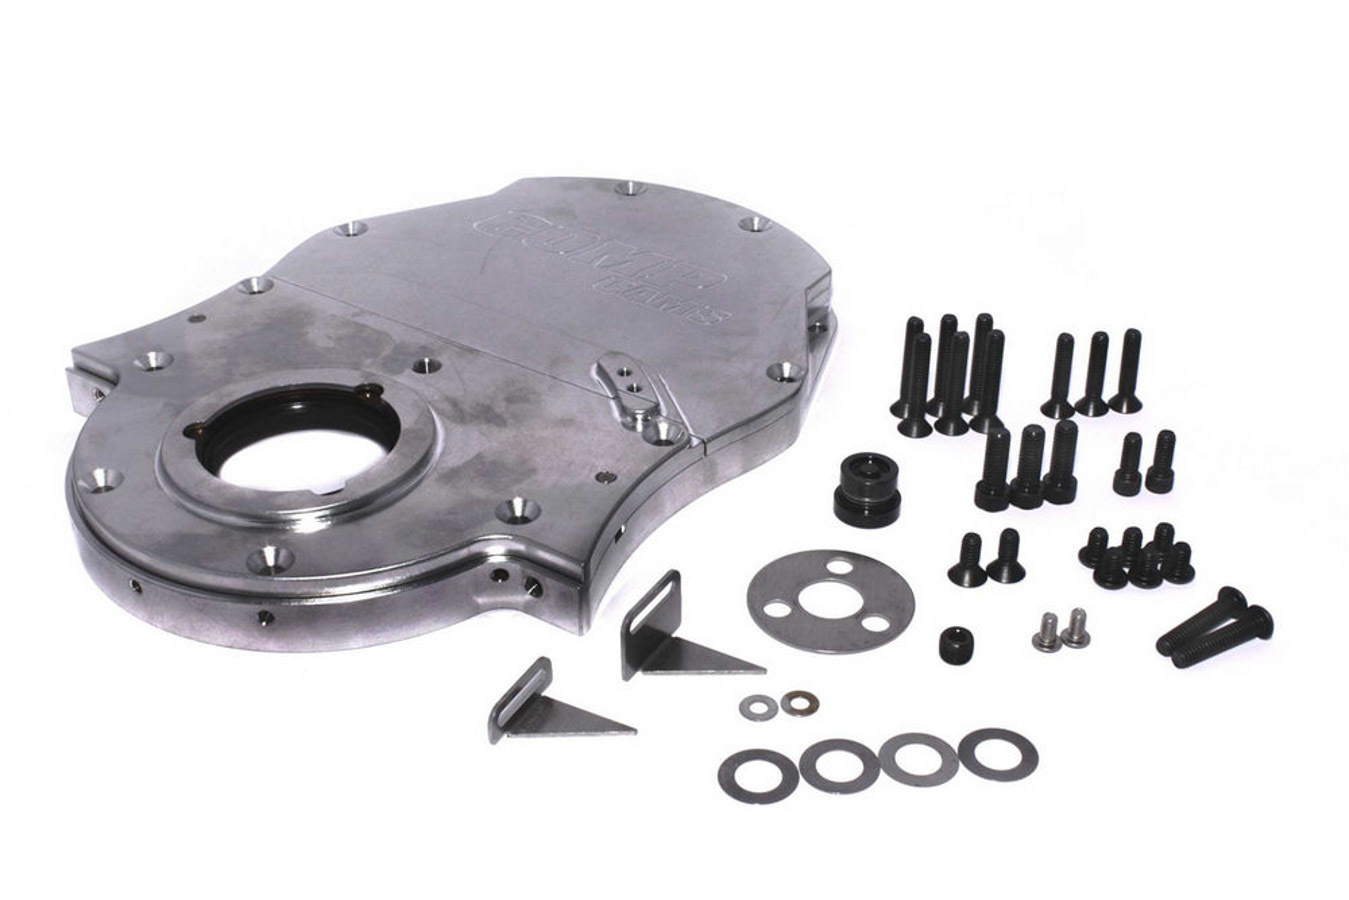 Comp Cams 312 Timing Cover, 3 Piece, Gaskets / Hardware / Seal / Timing Tab Included, Aluminum, Natural, Big Block Chevy, Kit